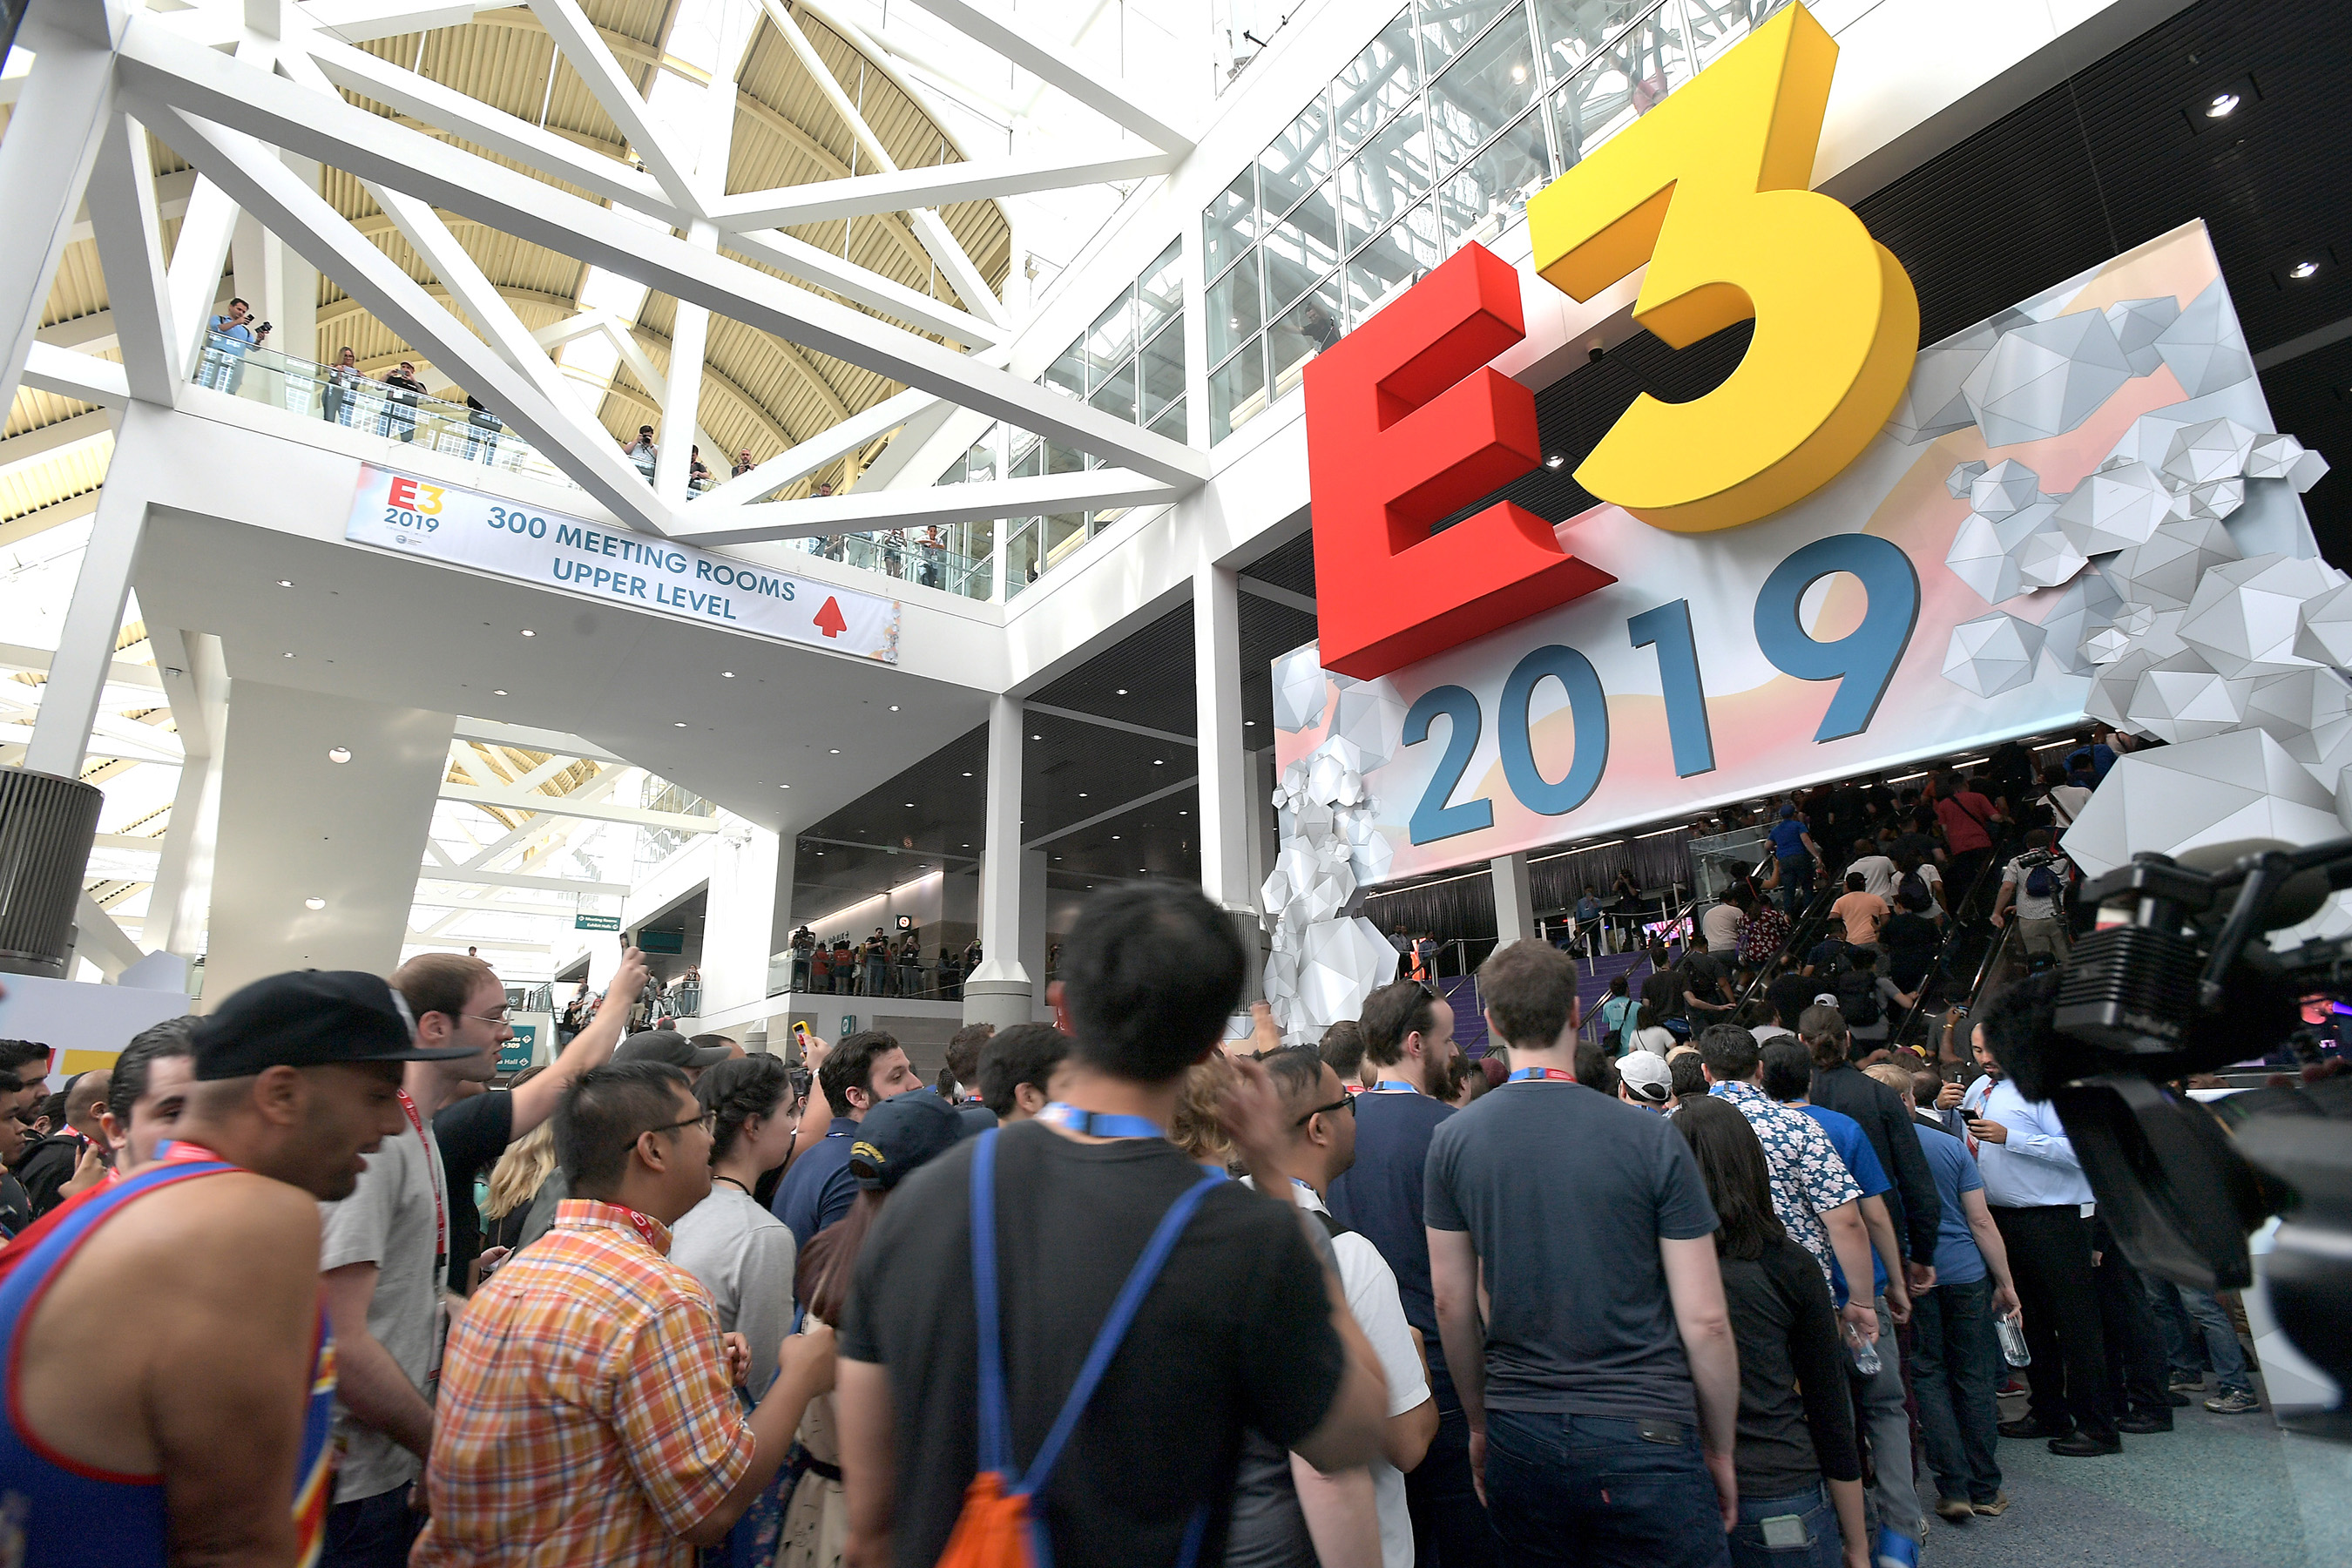 E3 2019 Atmosphere and Crowd